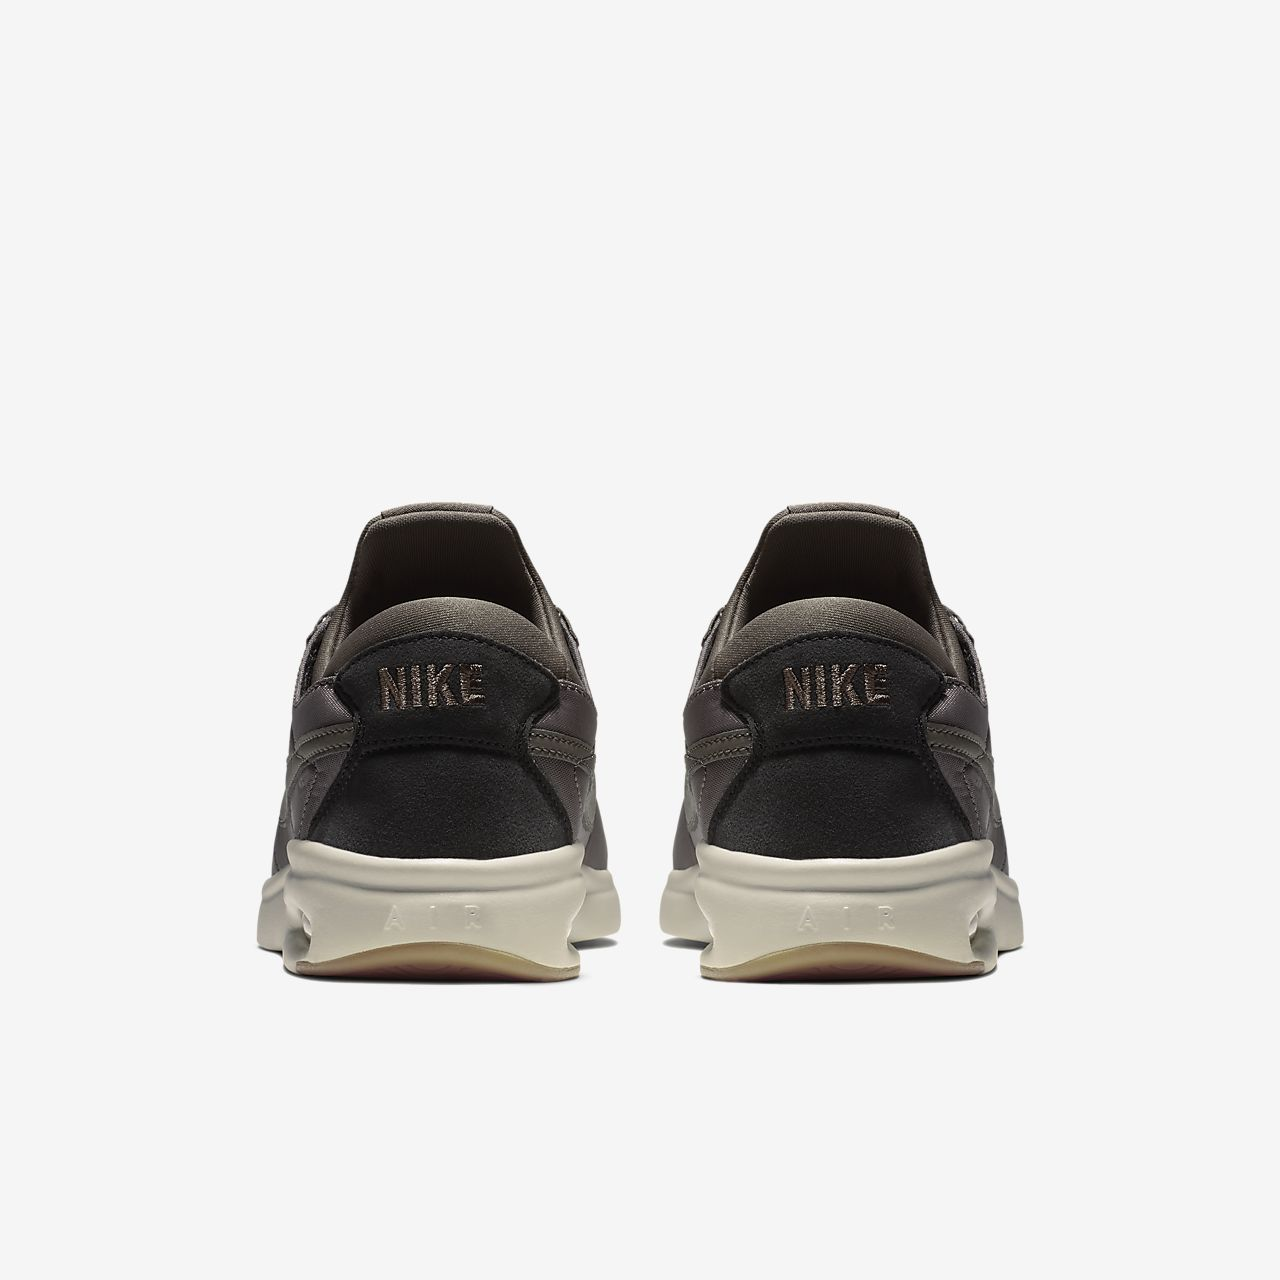 Are Nike Shoe Slimmer